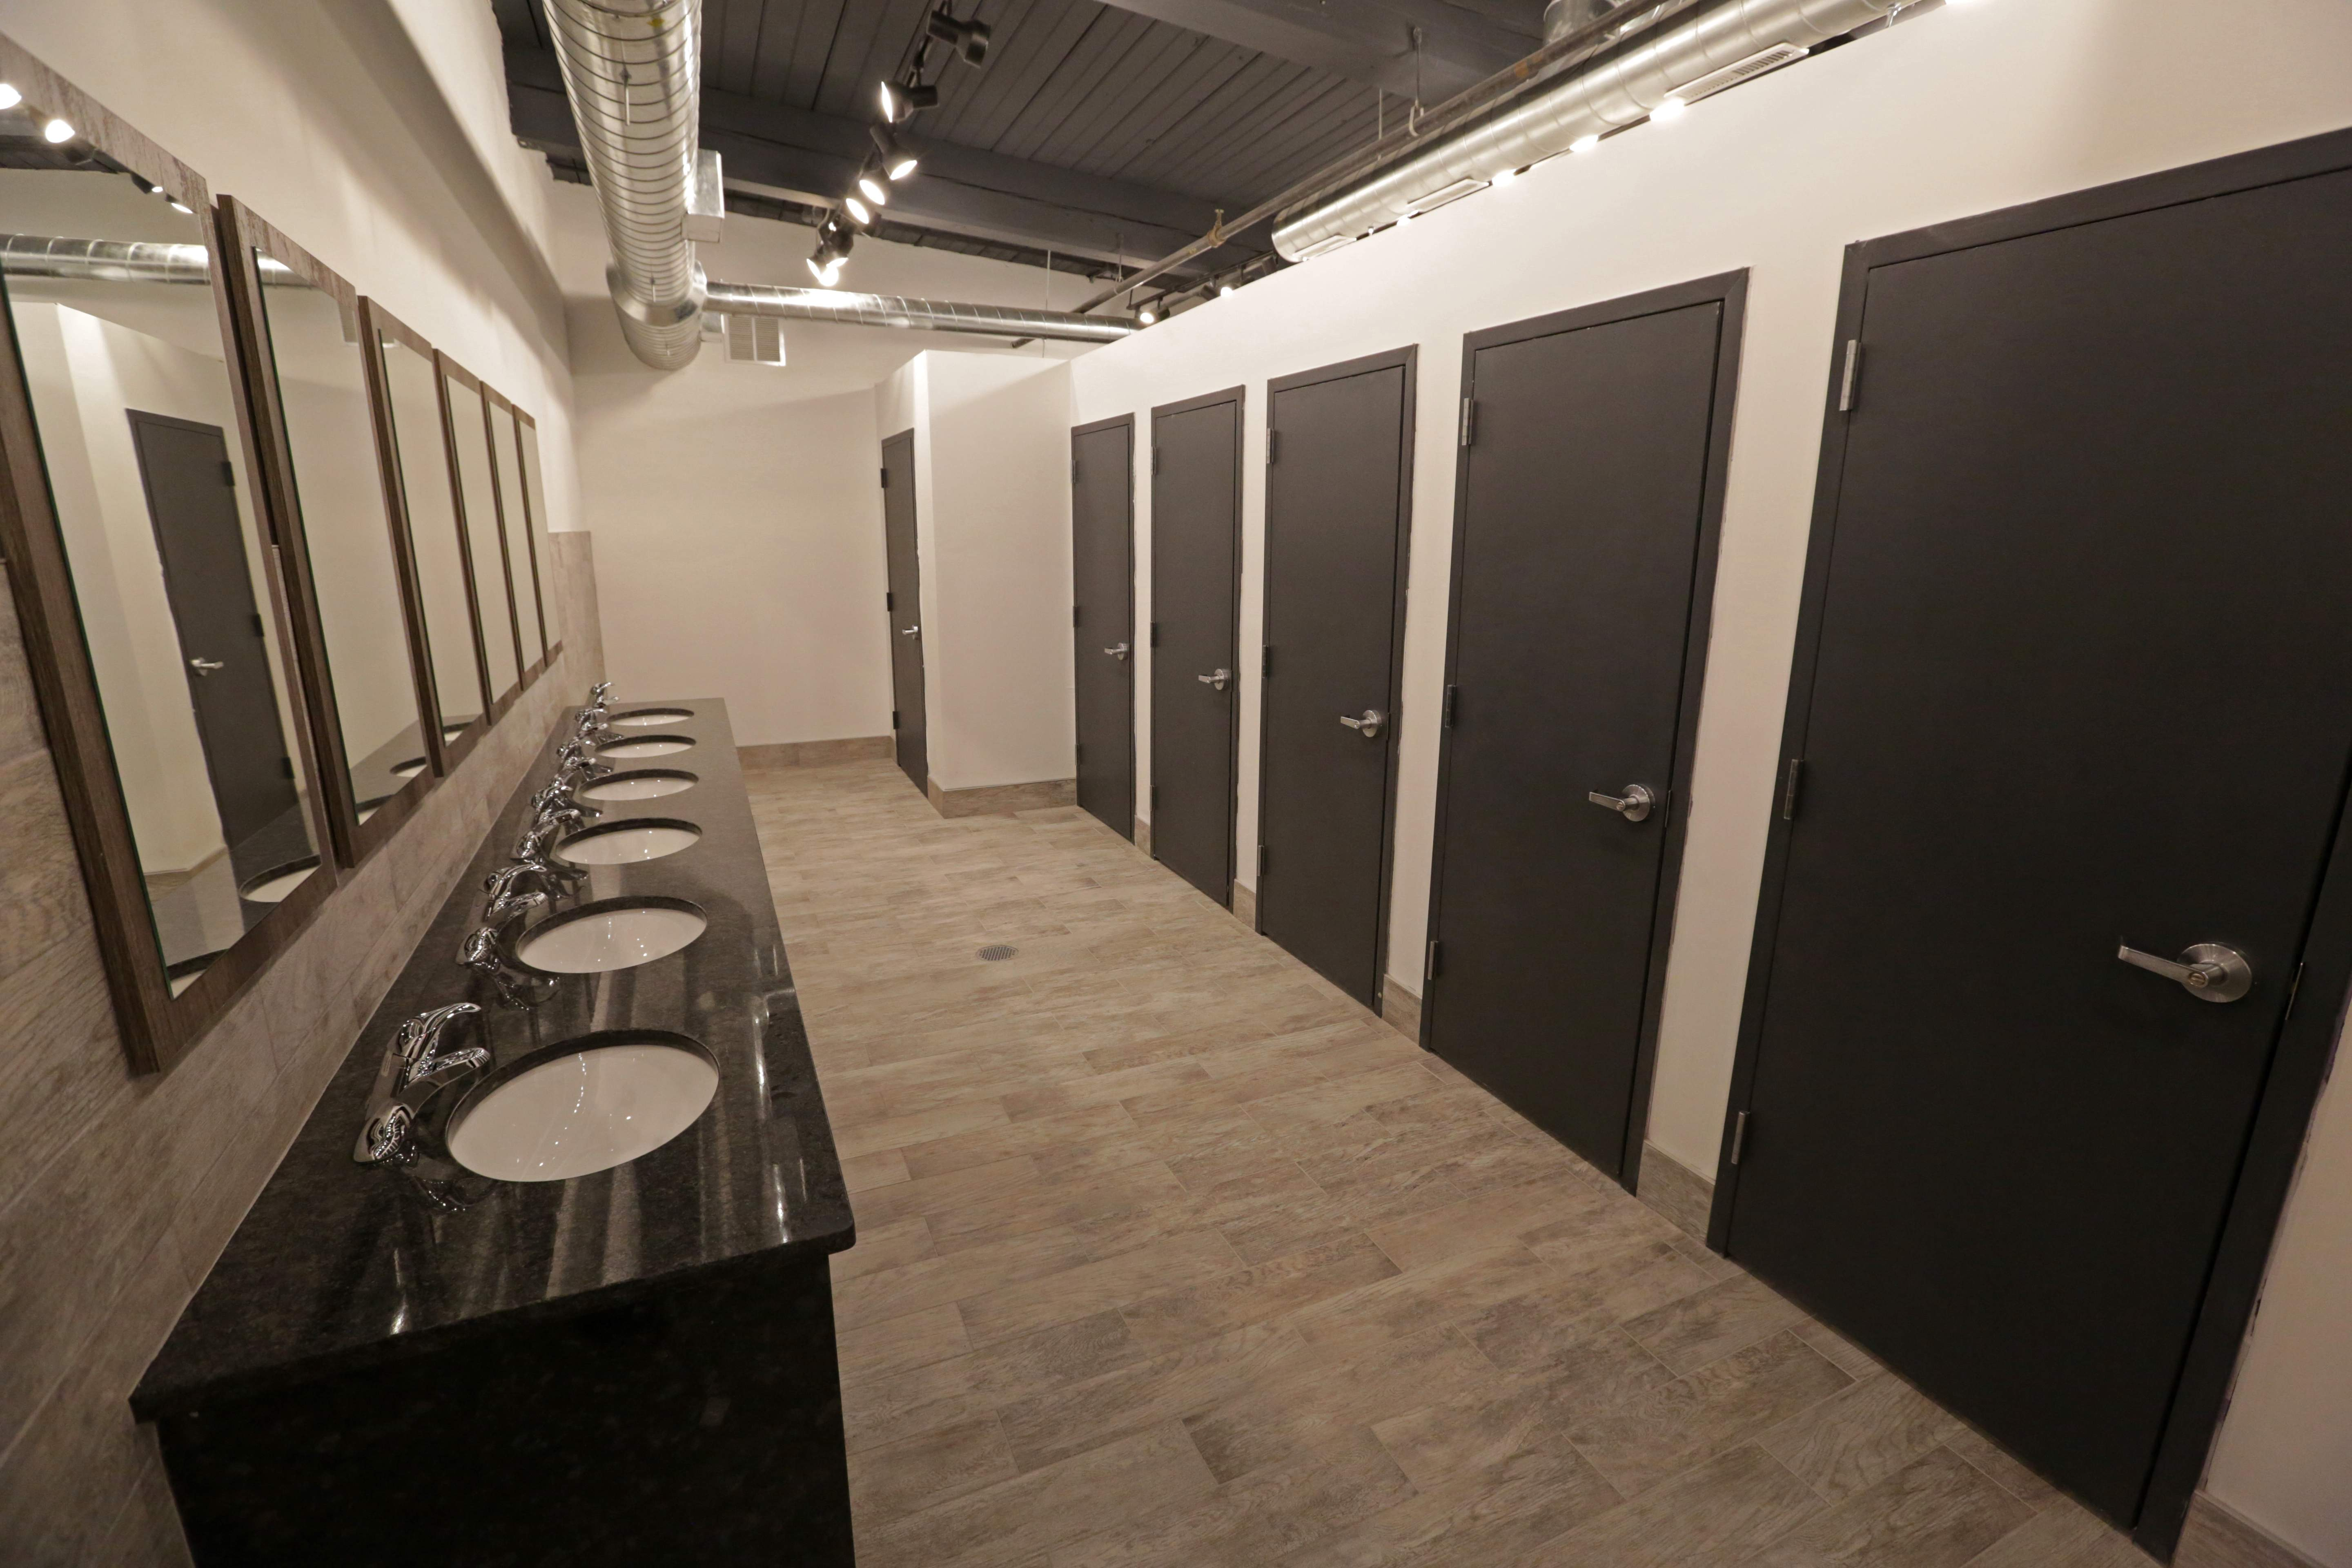 The women's bathroom in the Factory 220 event space at Contempo Plaza in Passaic.